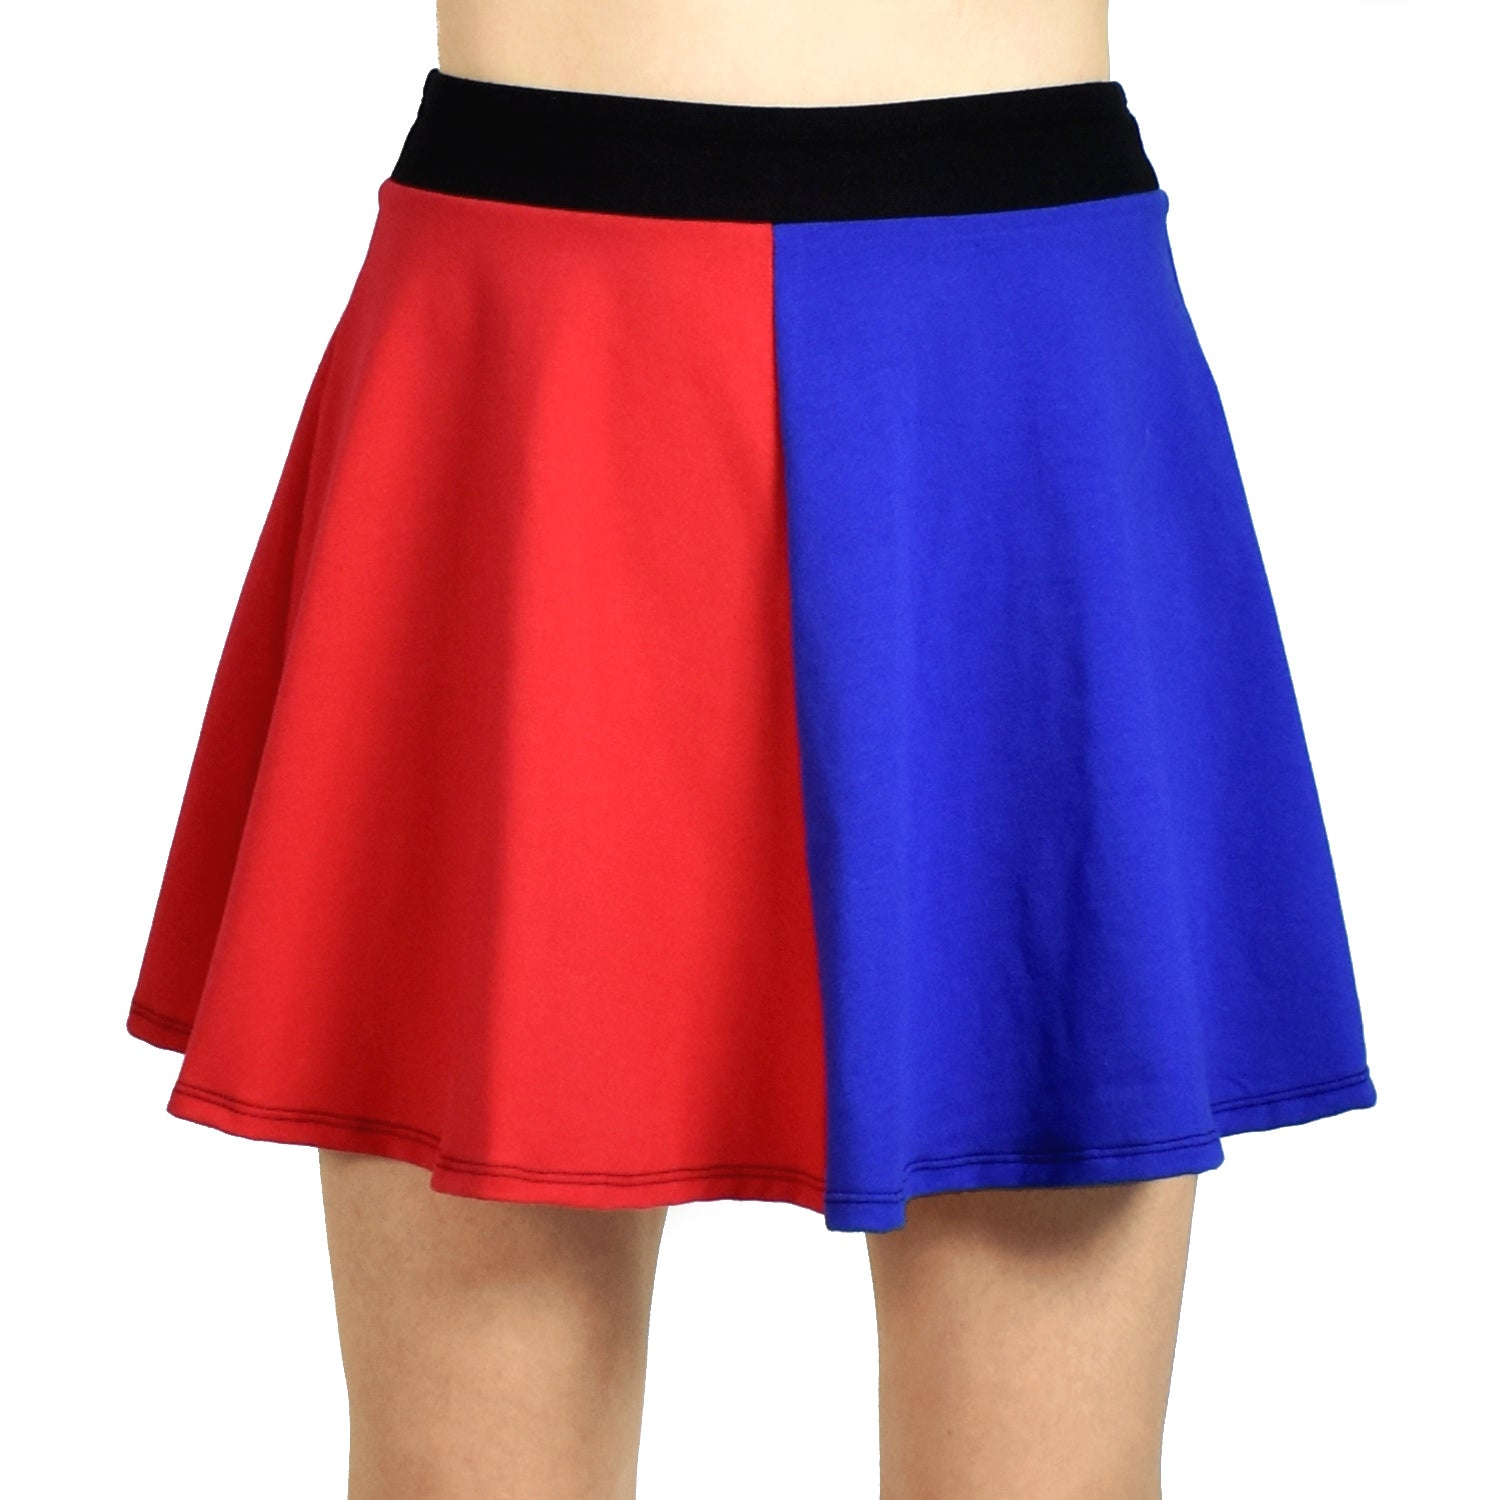 "Red and Blue Cotton Flared Skirt (16"" Length)"